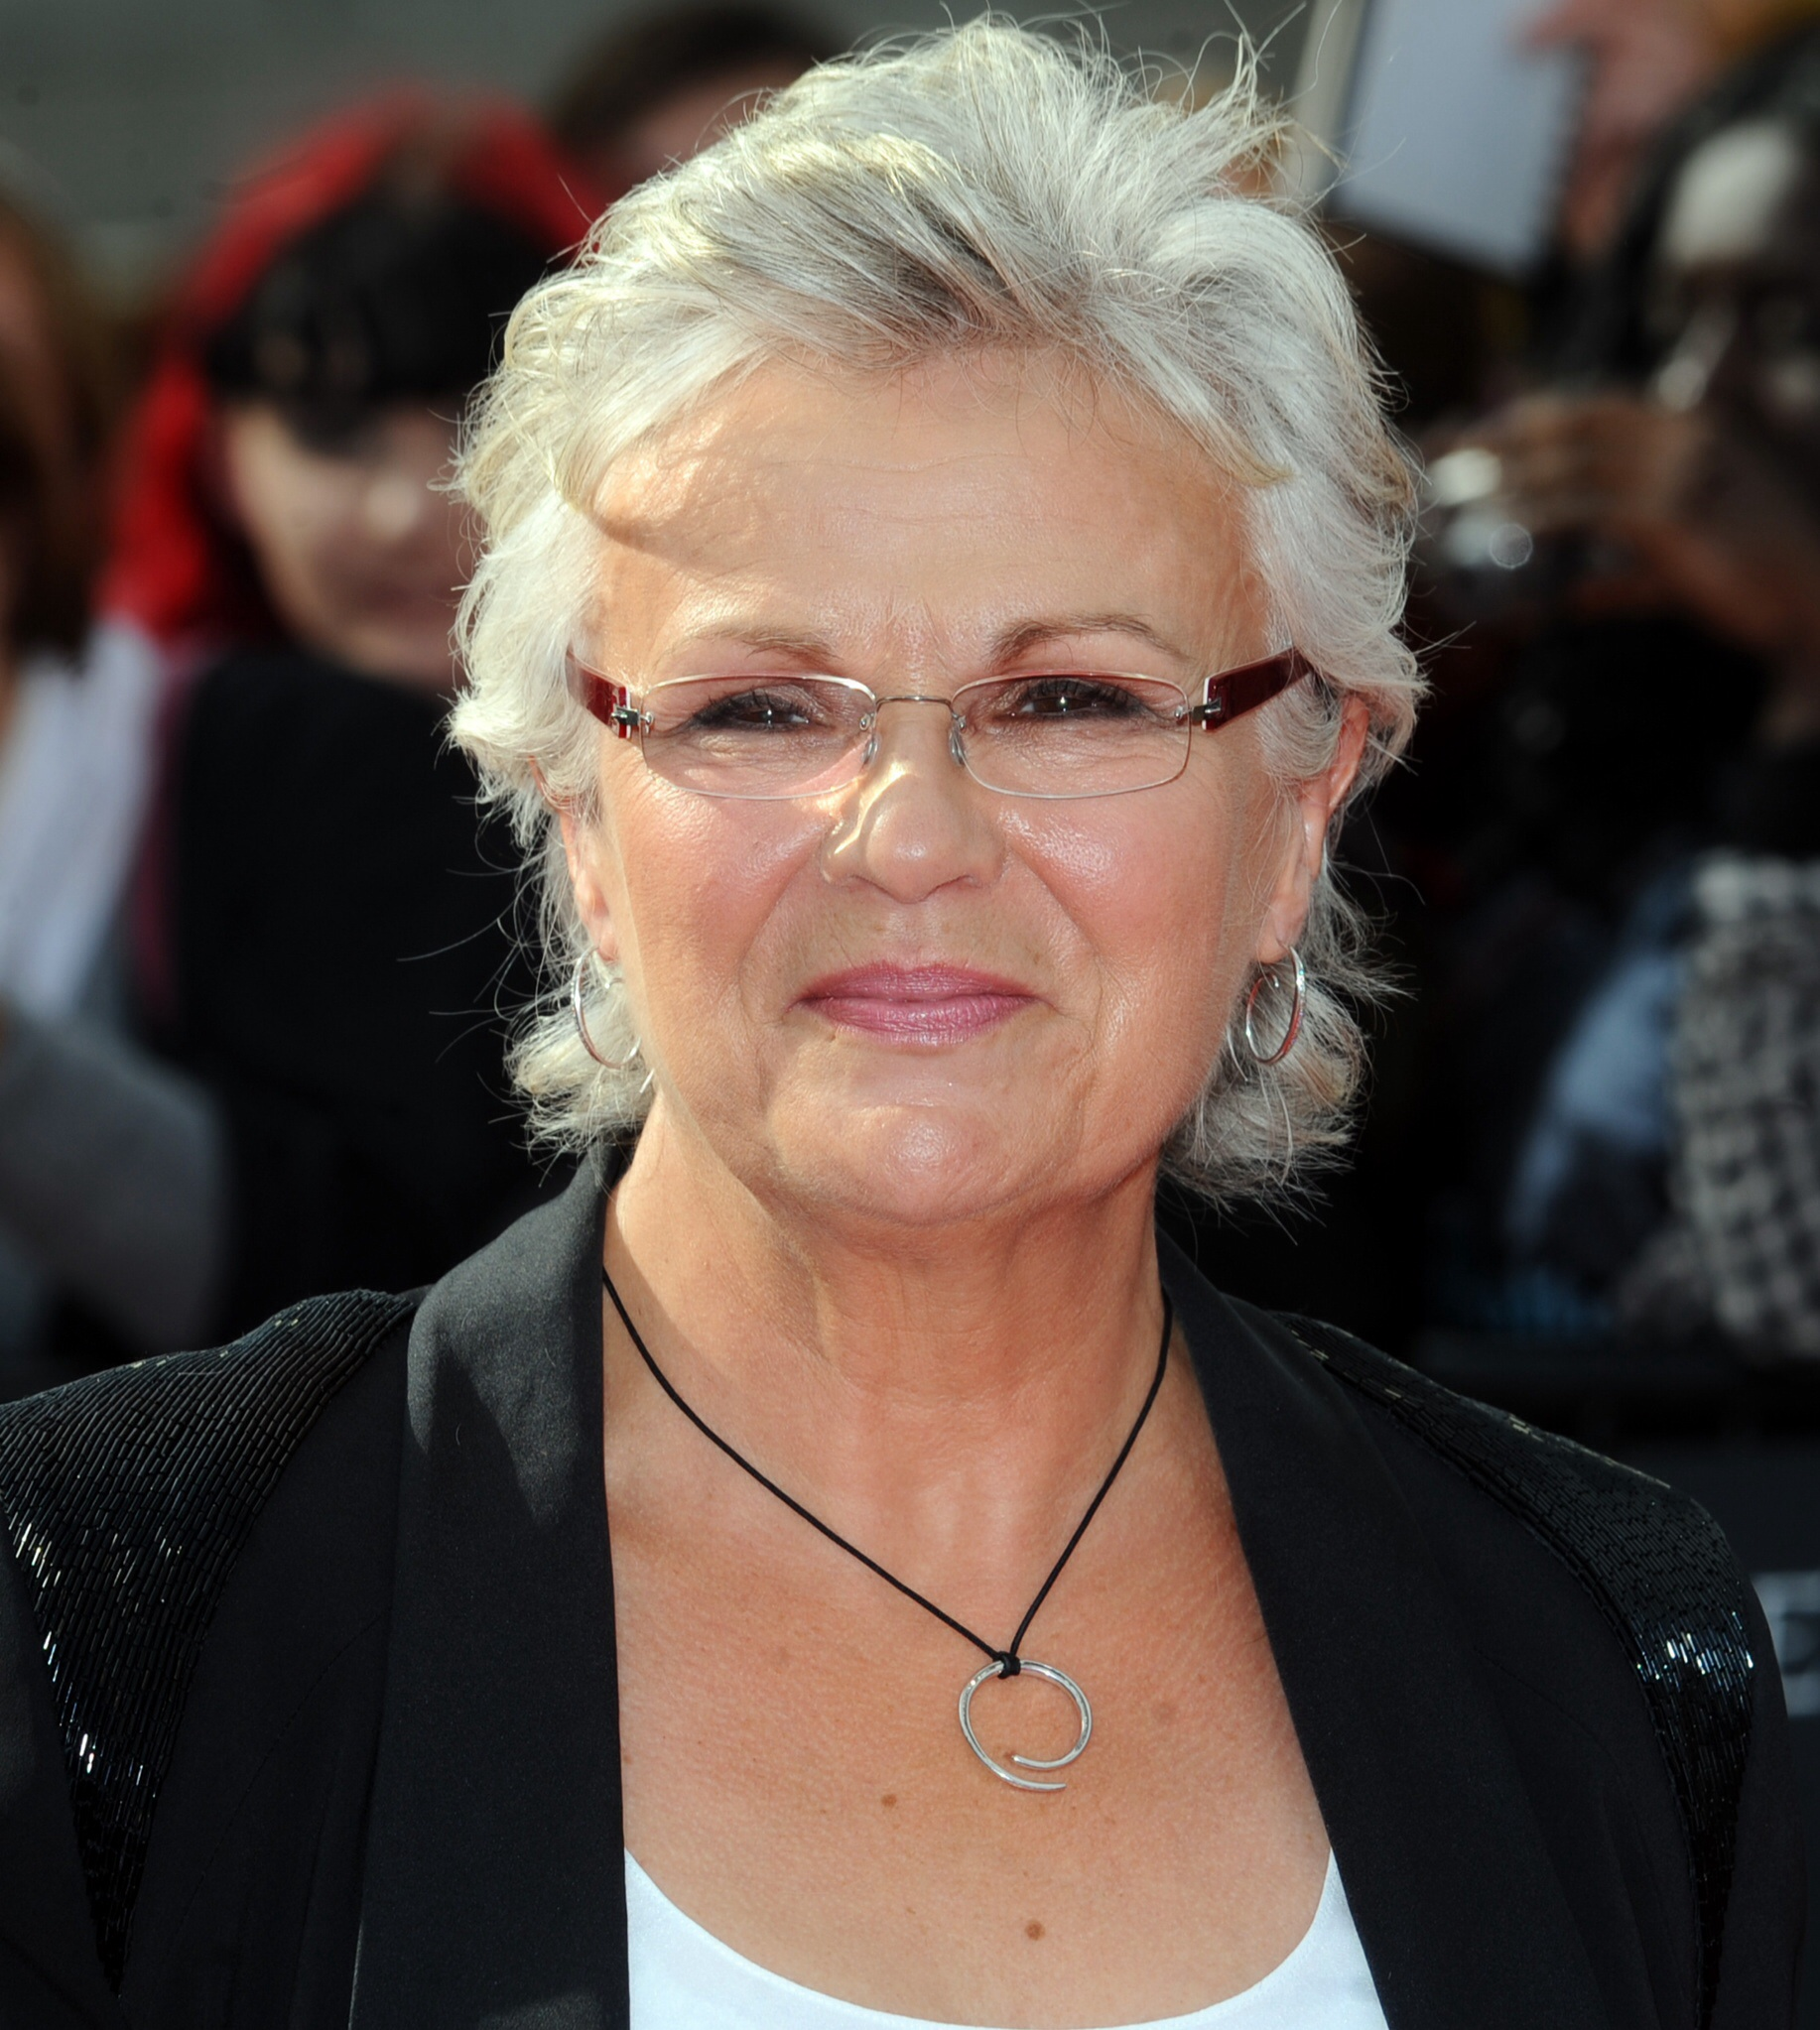 Julie Walters (born 1950) naked (51 photos), Tits, Cleavage, Boobs, cameltoe 2015